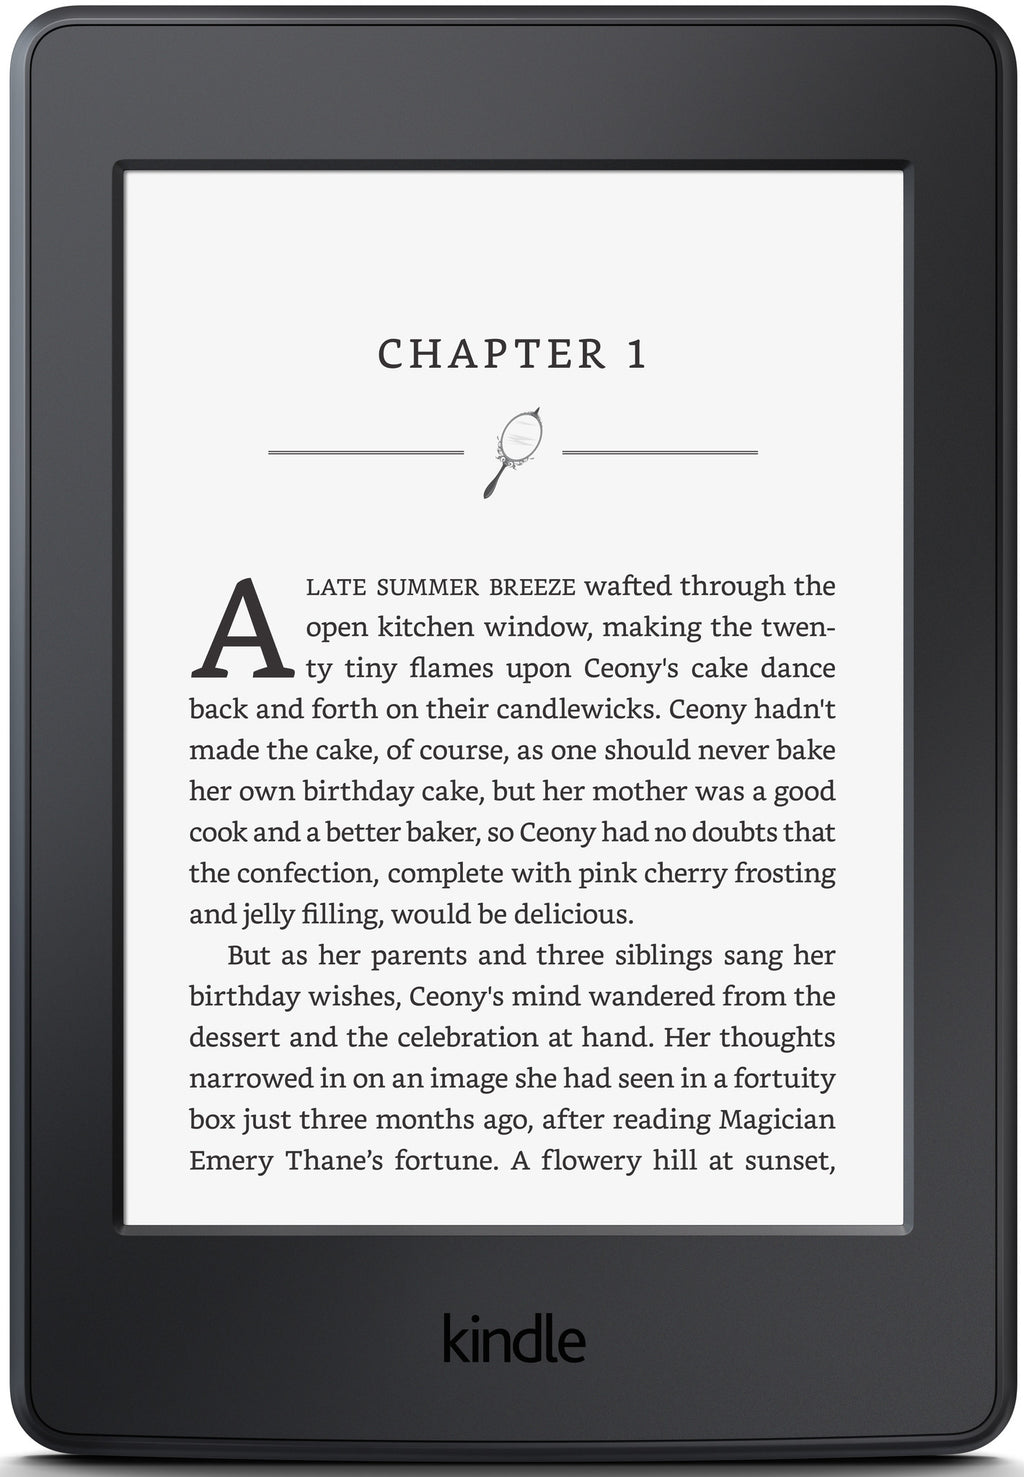 Amazon Kindle Paperwhite, Black, Wi-Fi without Advertisements (US Set, 7th Generation)